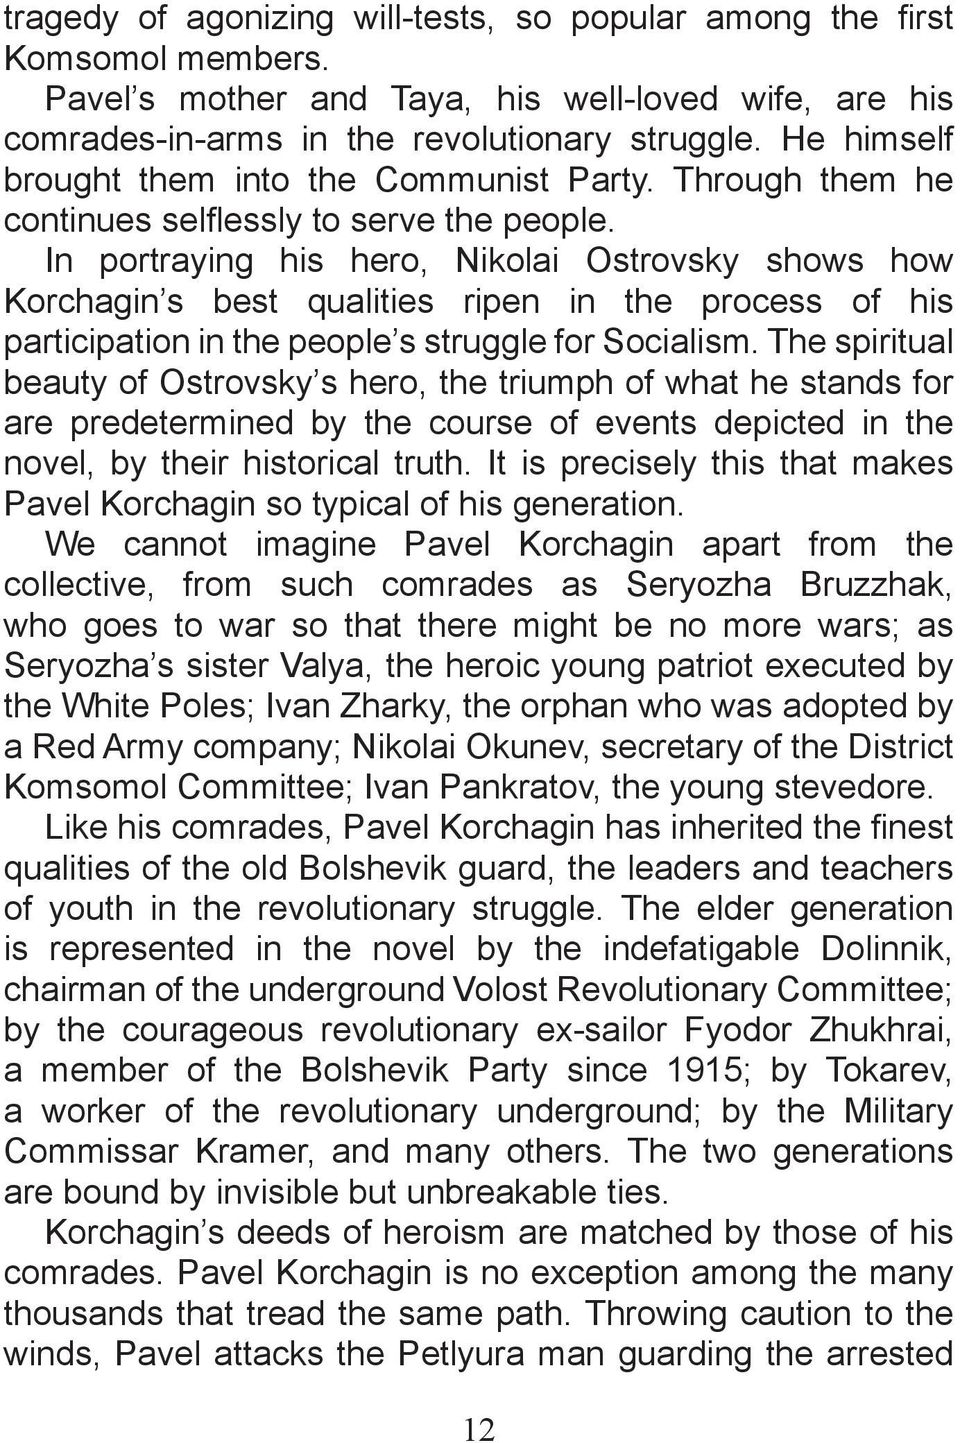 In portraying his hero, Nikolai Ostrovsky shows how Korchagin s best qualities ripen in the process of his participation in the people s struggle for Socialism.